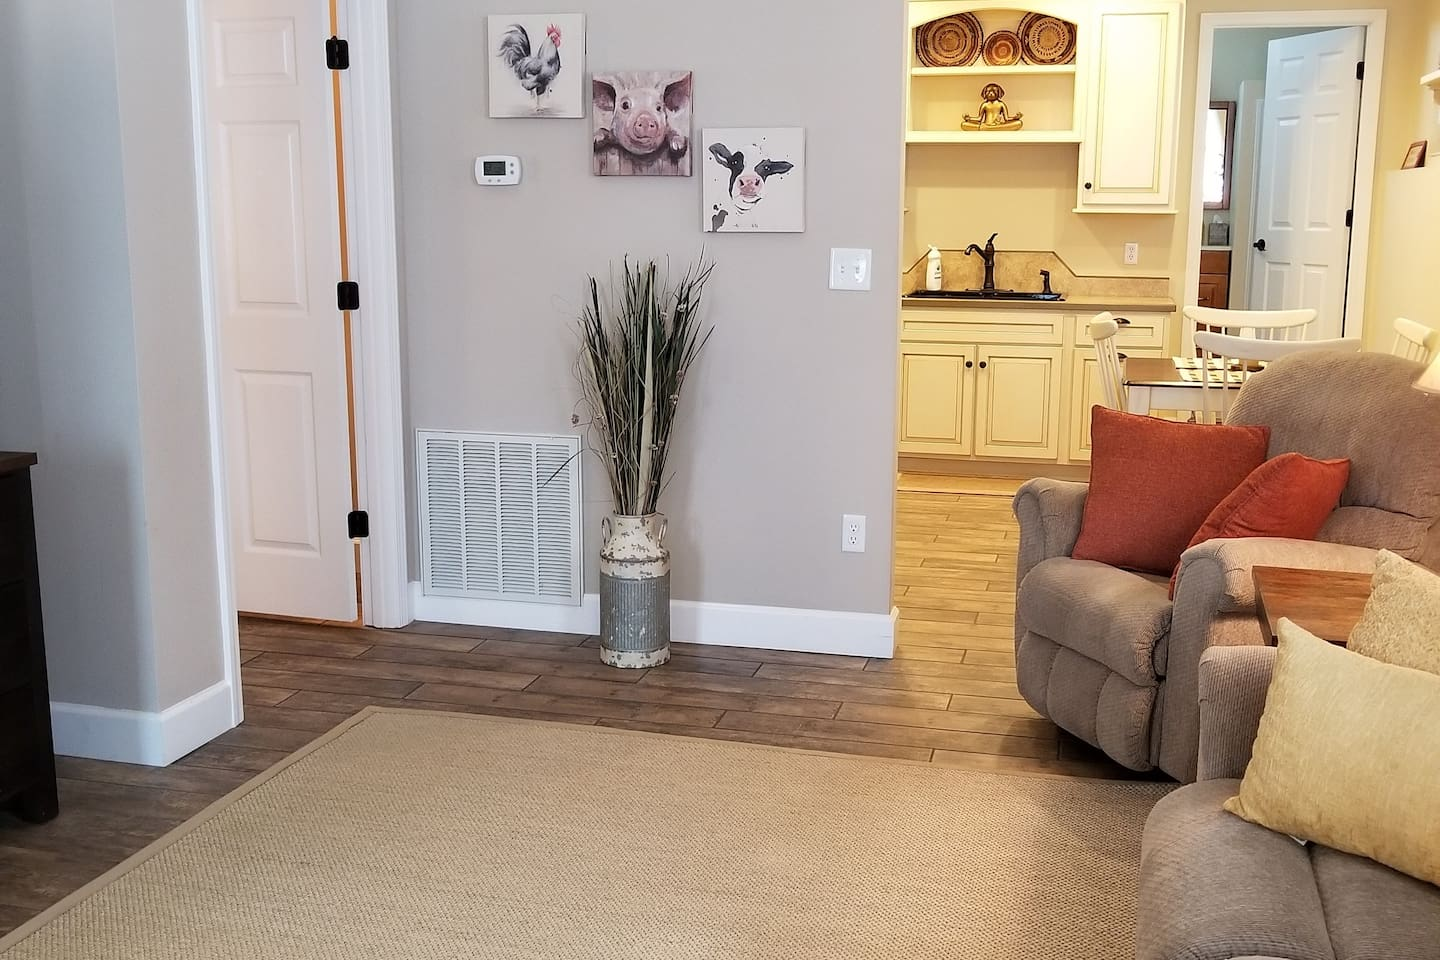 Beautiful newly constructed apartment. Tile floors, Amish built kitchen